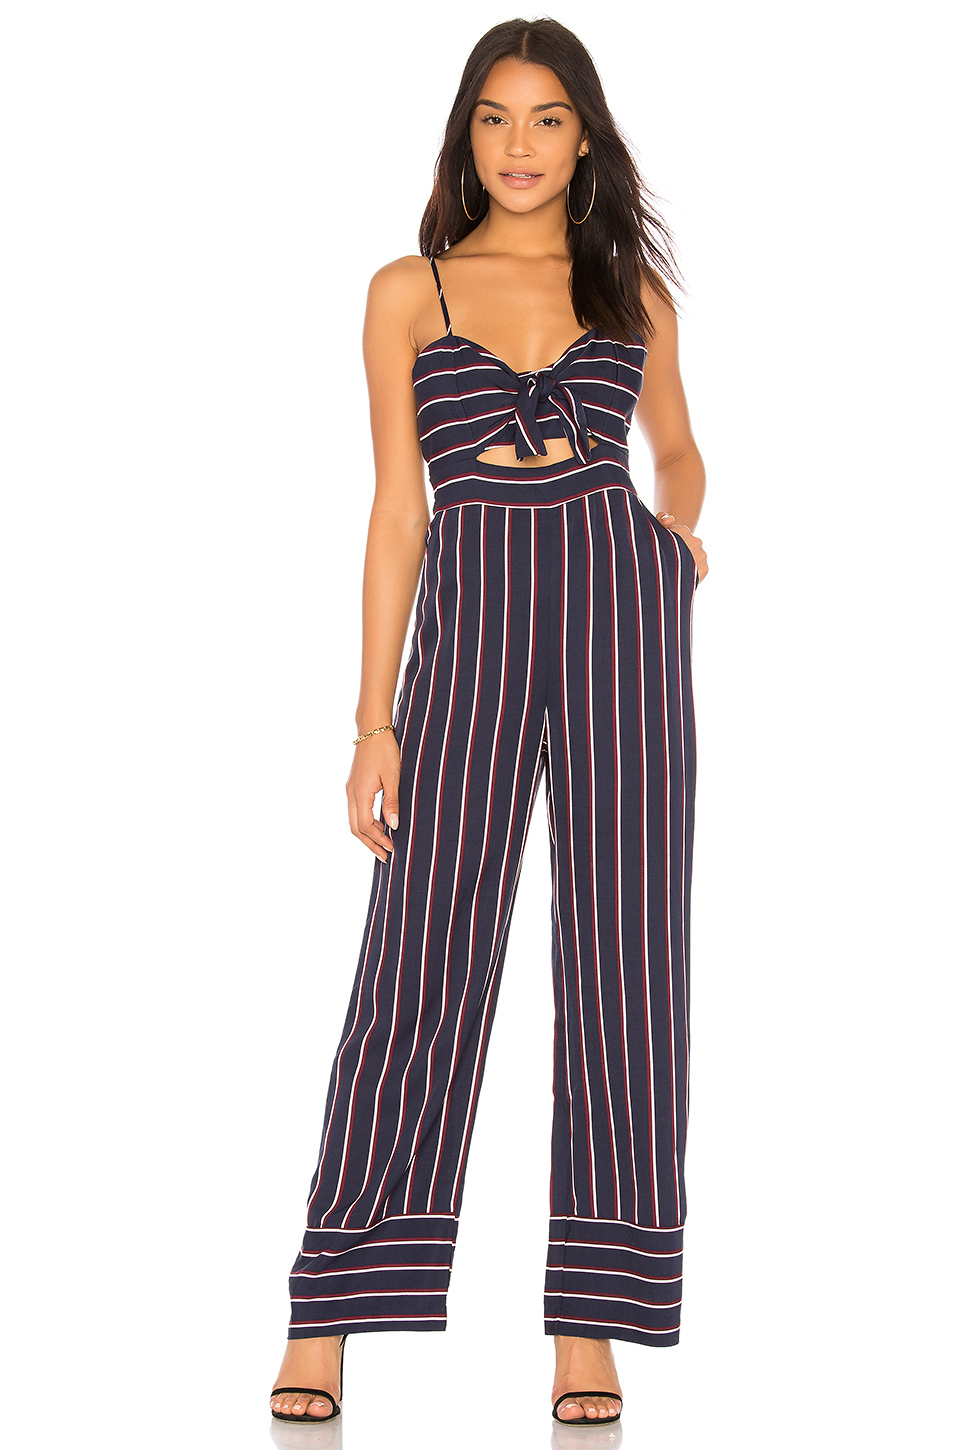 e4c6f3b1453 Buy Original Bardot Lulu Jumpsuit at Indonesia